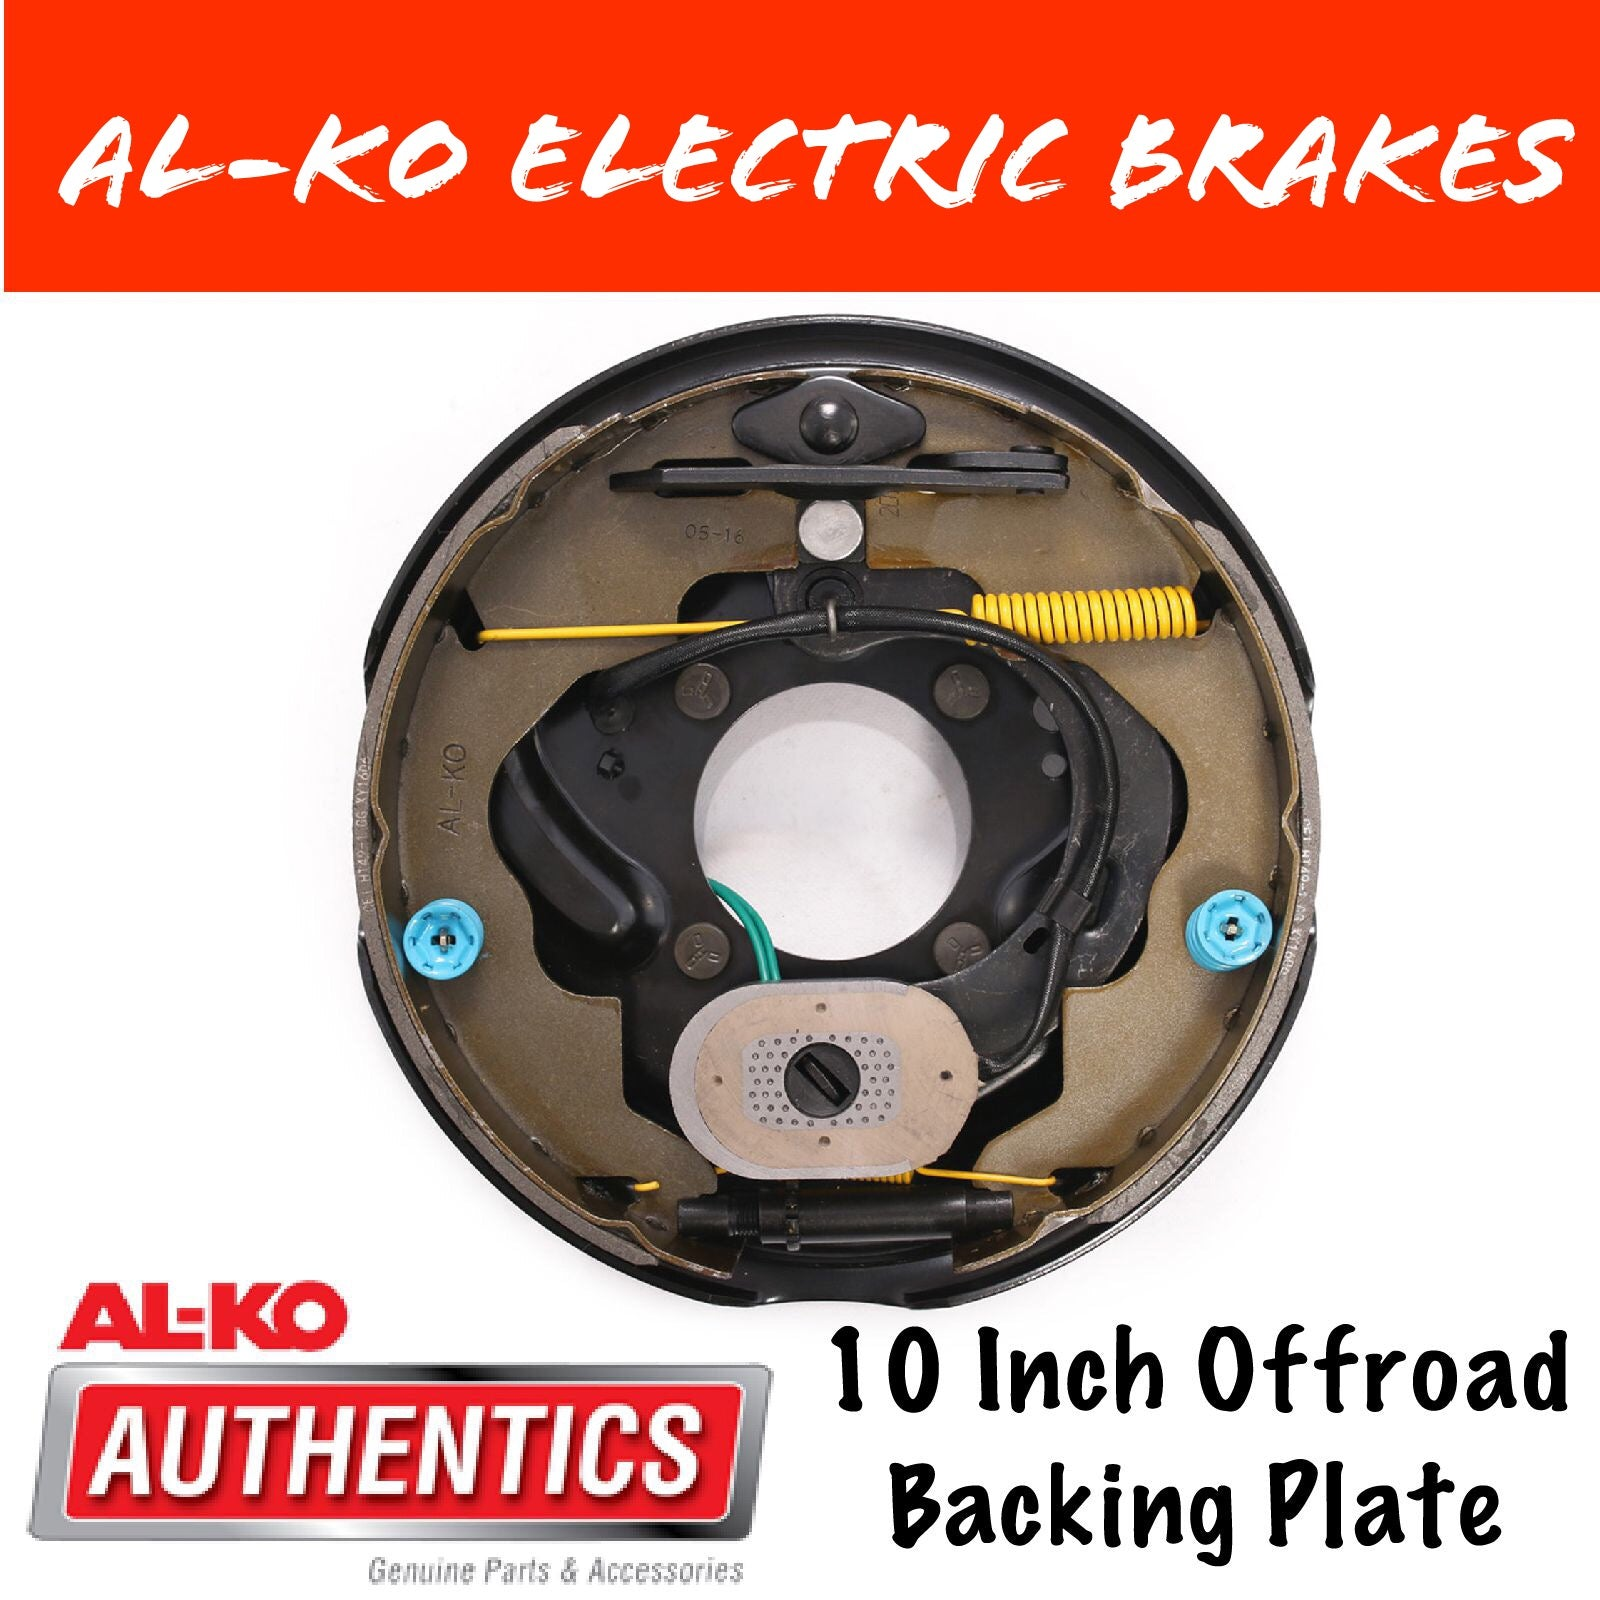 AL-KO 10 Inch Offroad Electric Brake Backing Plate